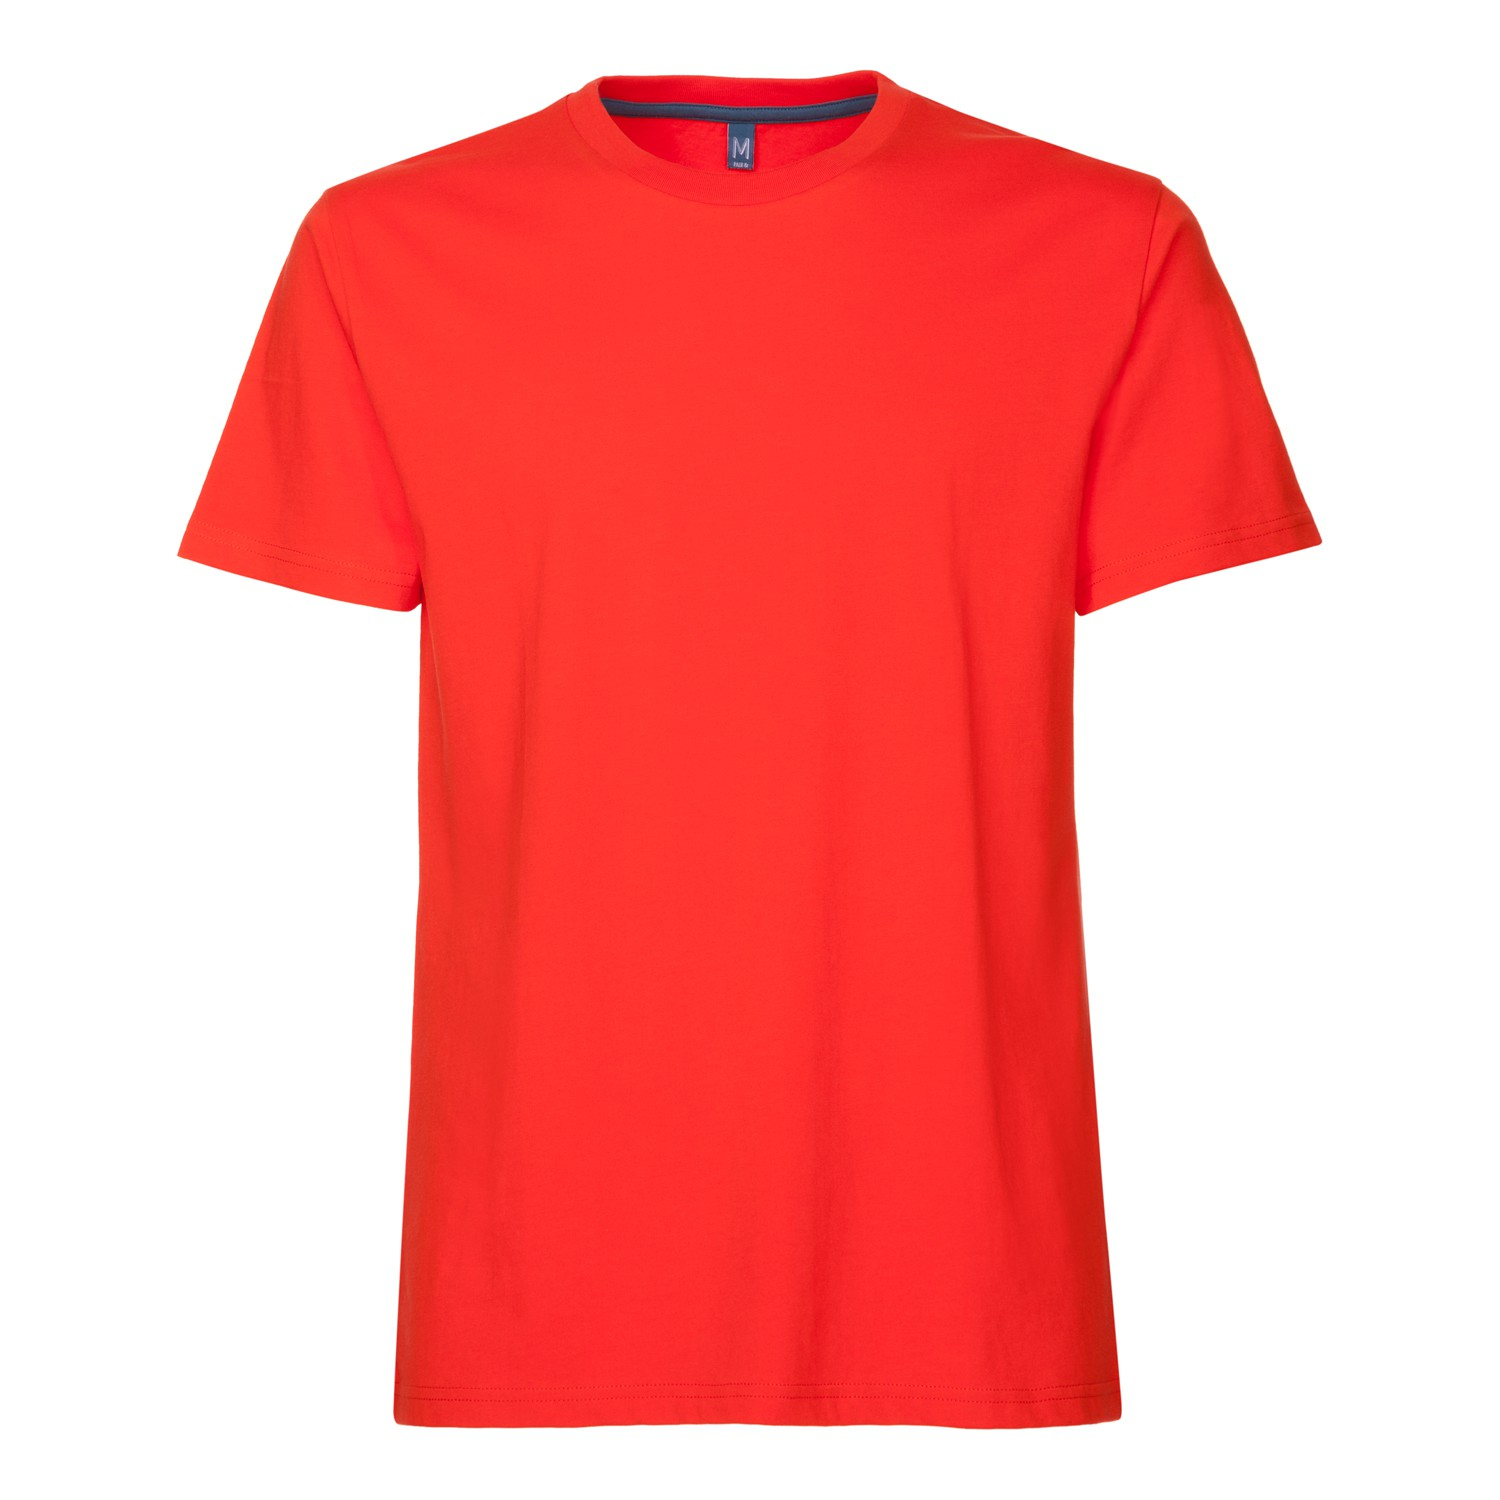 Tt02 t shirt poppy gots fairtrade sale man Fair trade plain t shirts